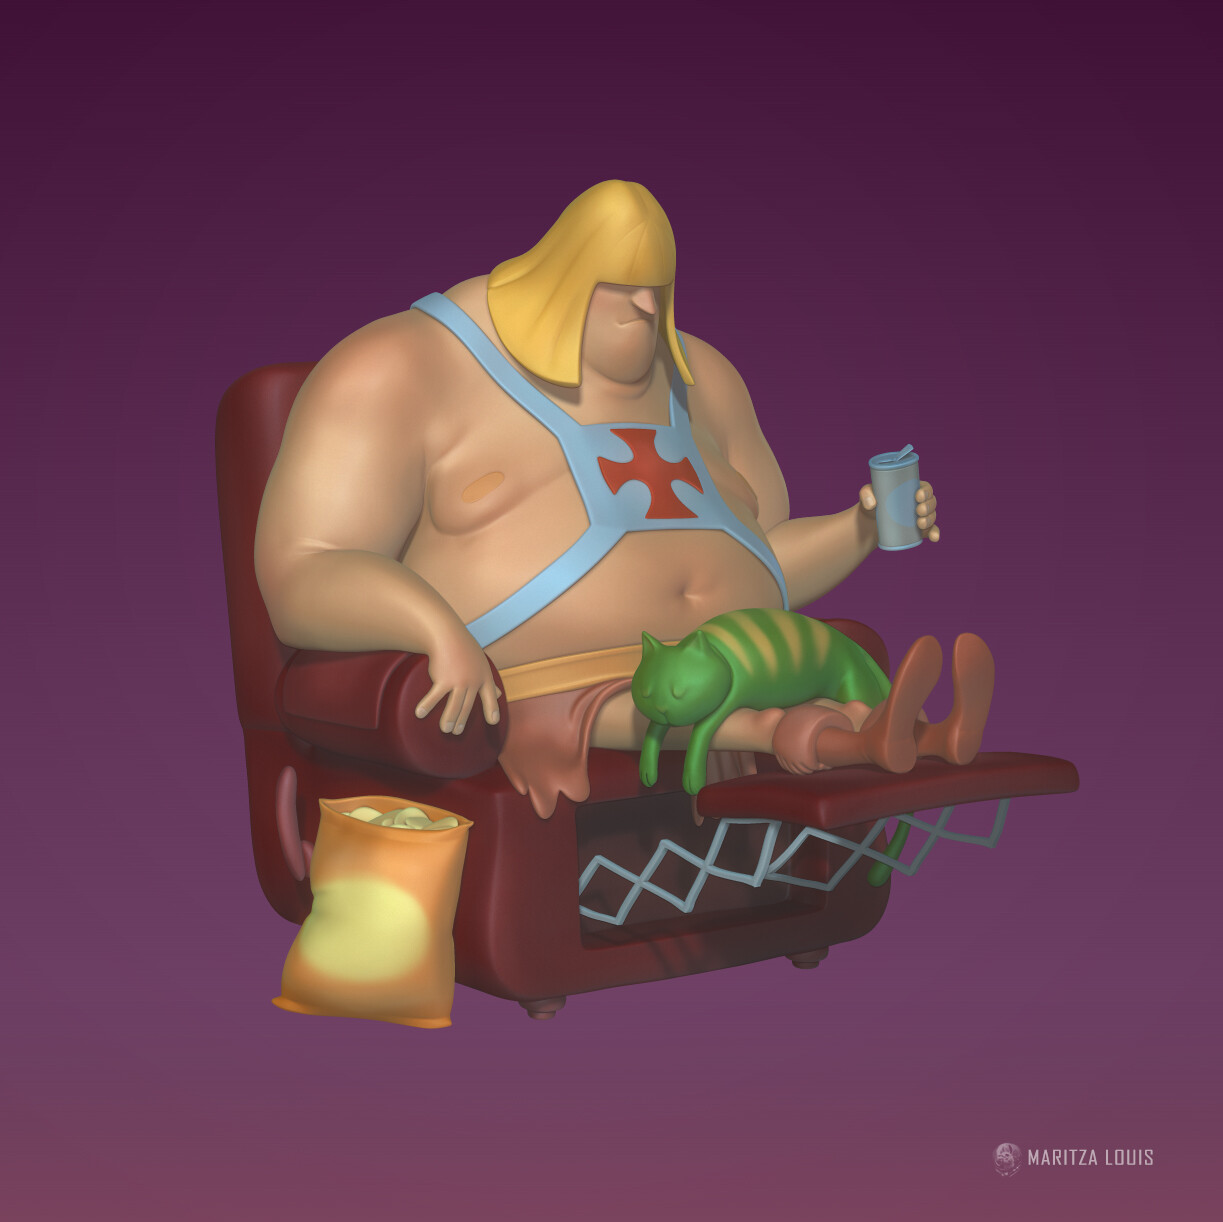 Meanwhile at Castle Greyskull...